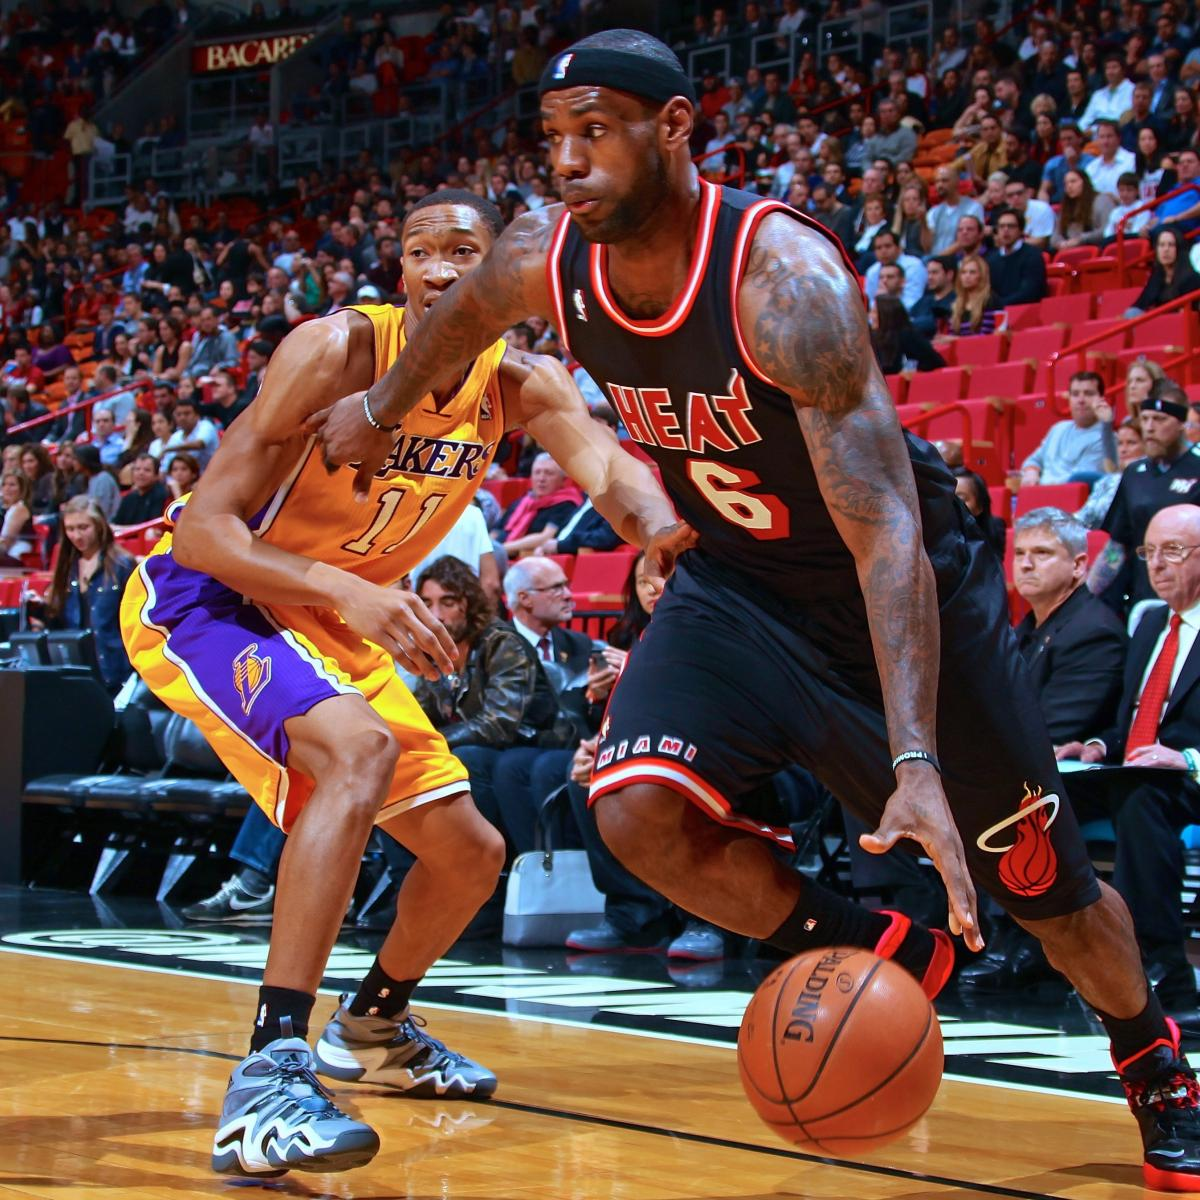 96d972d11d4 Los Angeles Lakers vs. Miami Heat  Live Score and Analysis ...